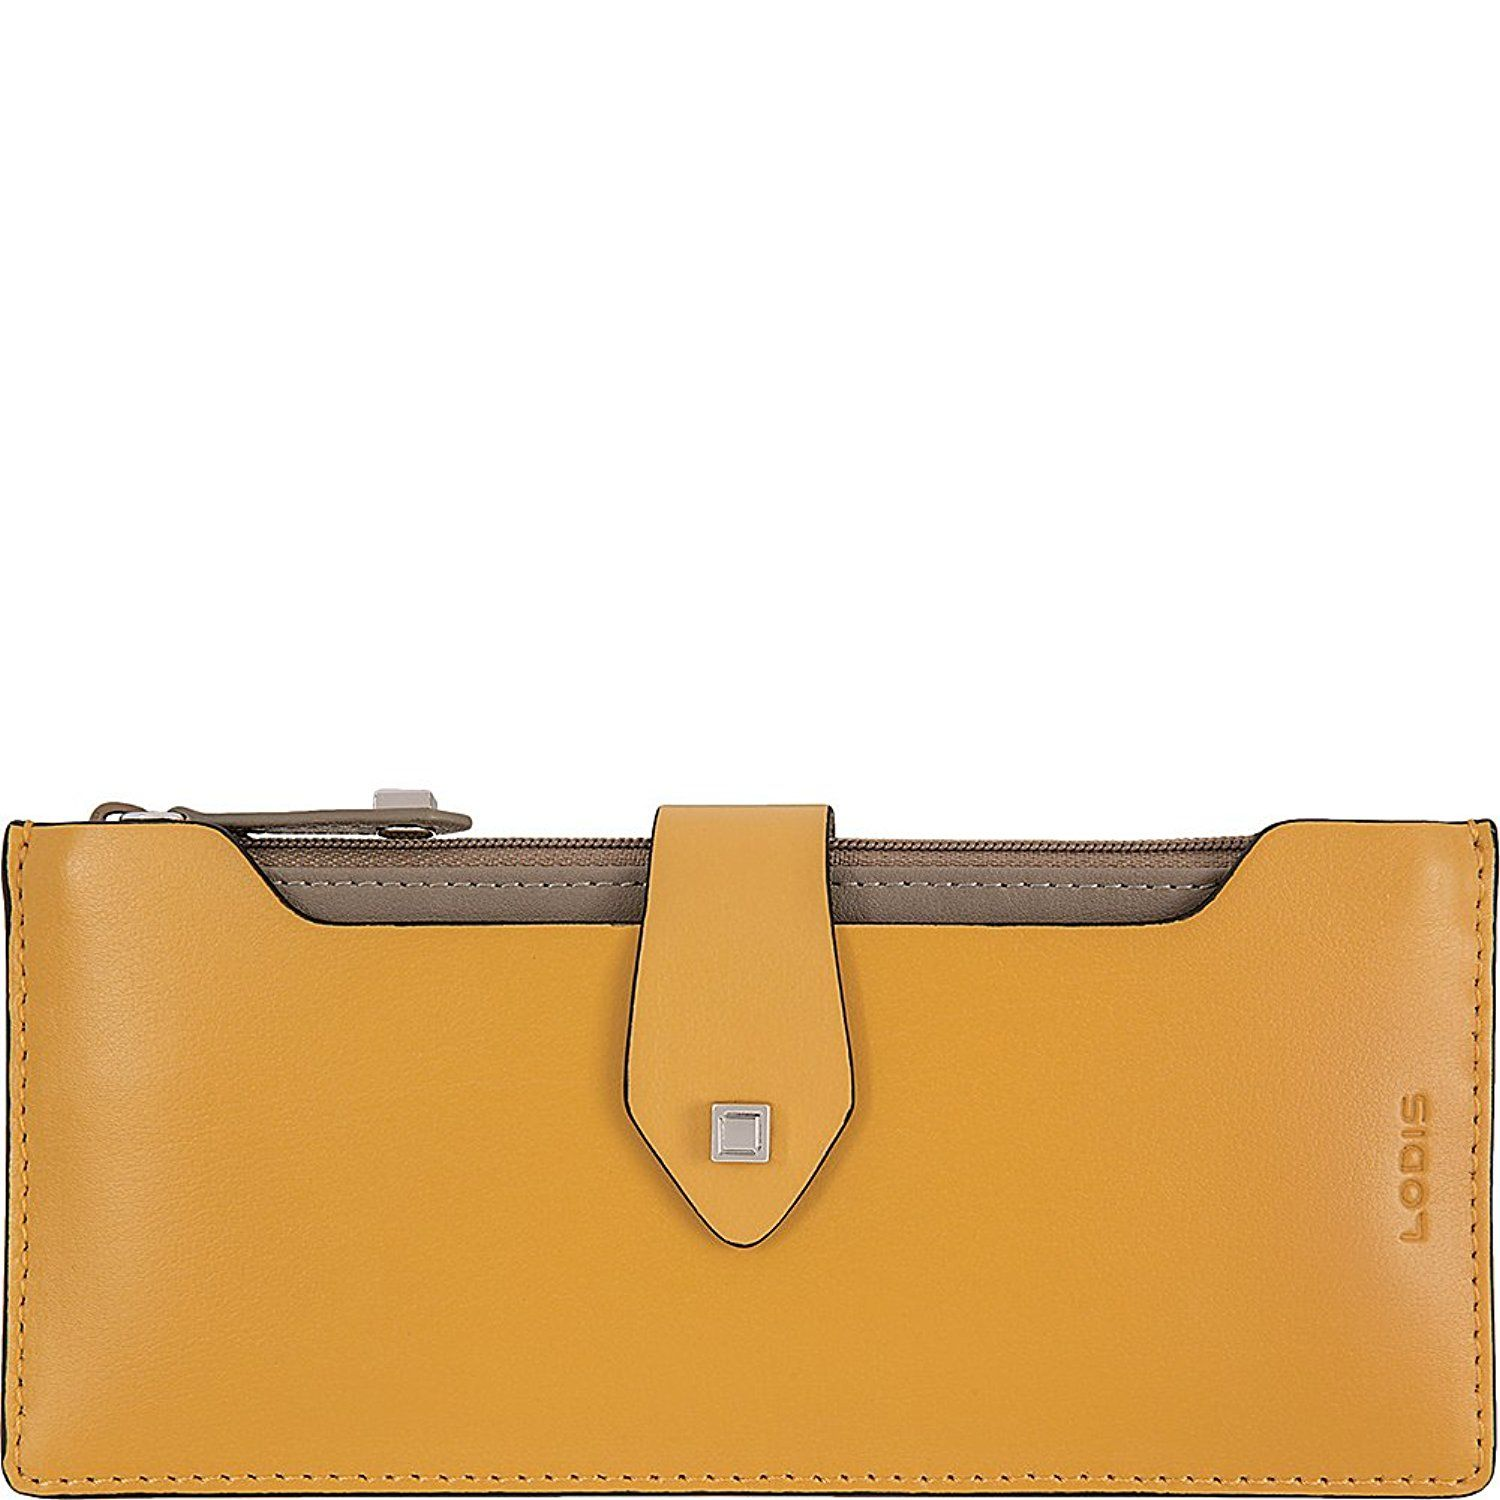 e4617f4d7b2a Lodis Blair Sandy Pouch Wallet (Honey/Taupe) at Amazon Women's Clothing  store: